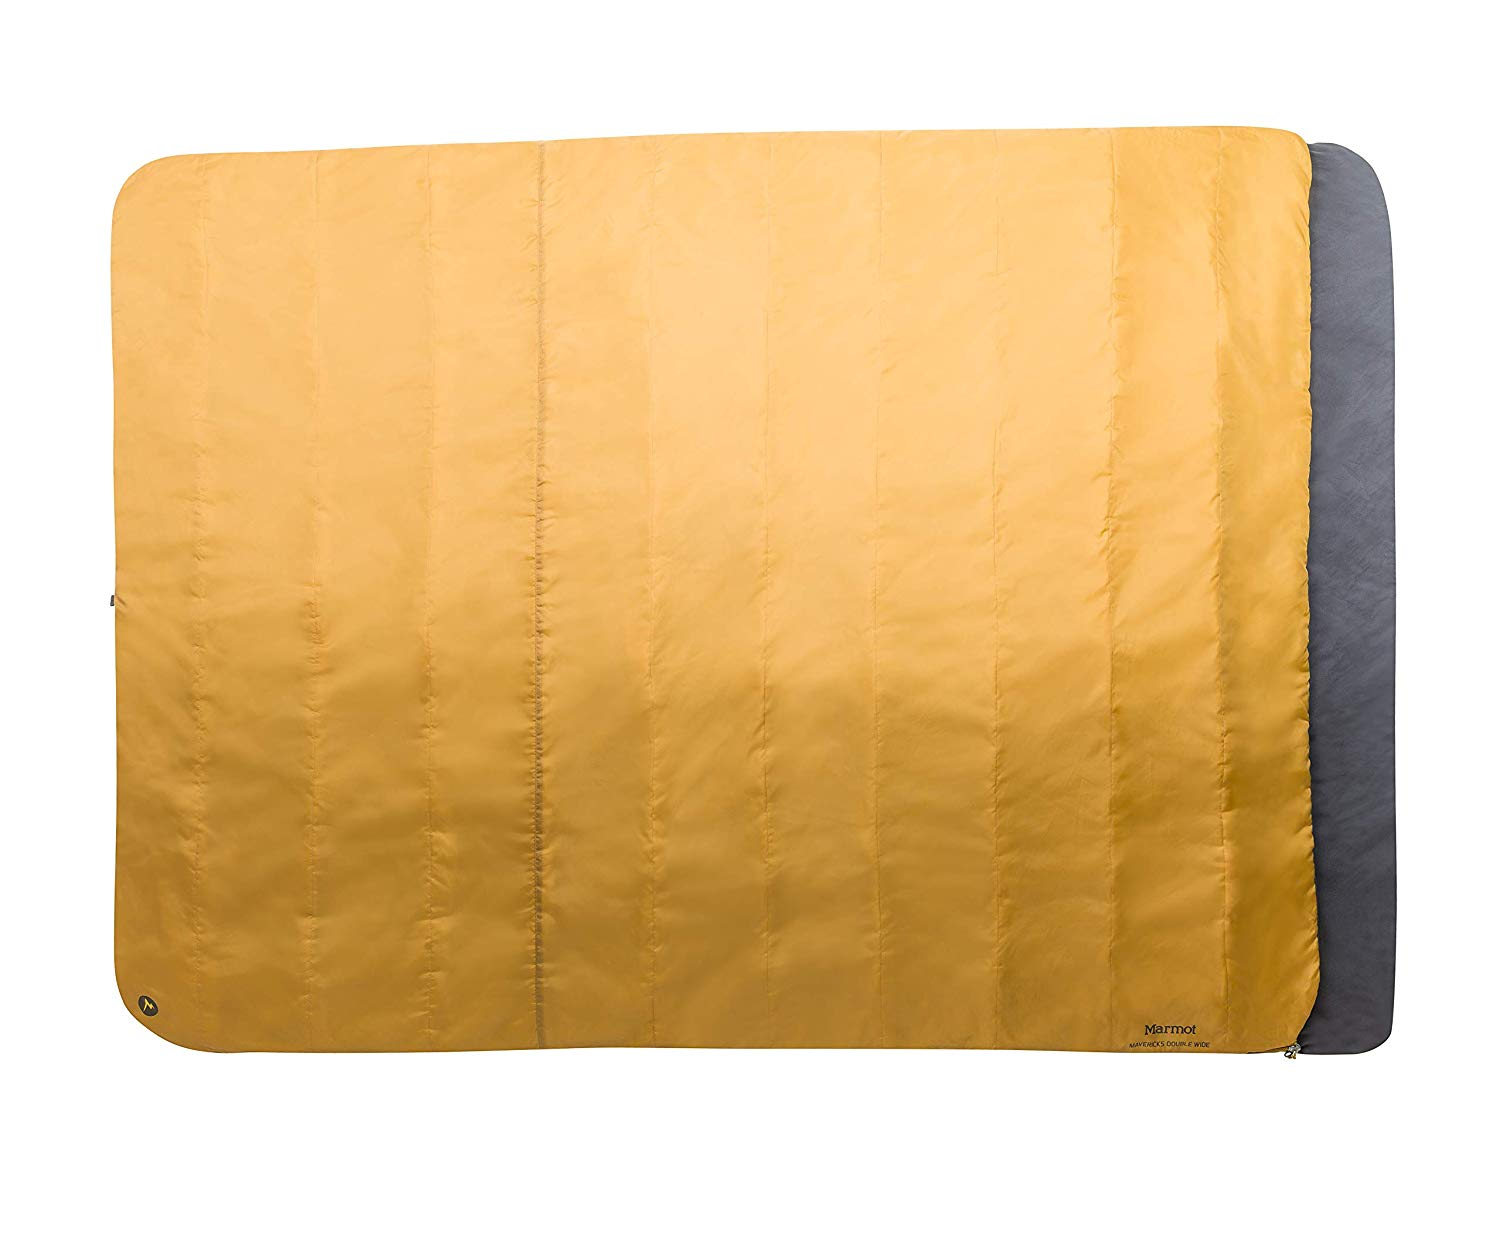 An image related to Marmot Mavericks 23090-9112 30 Degree Polyester Sleeping Bag